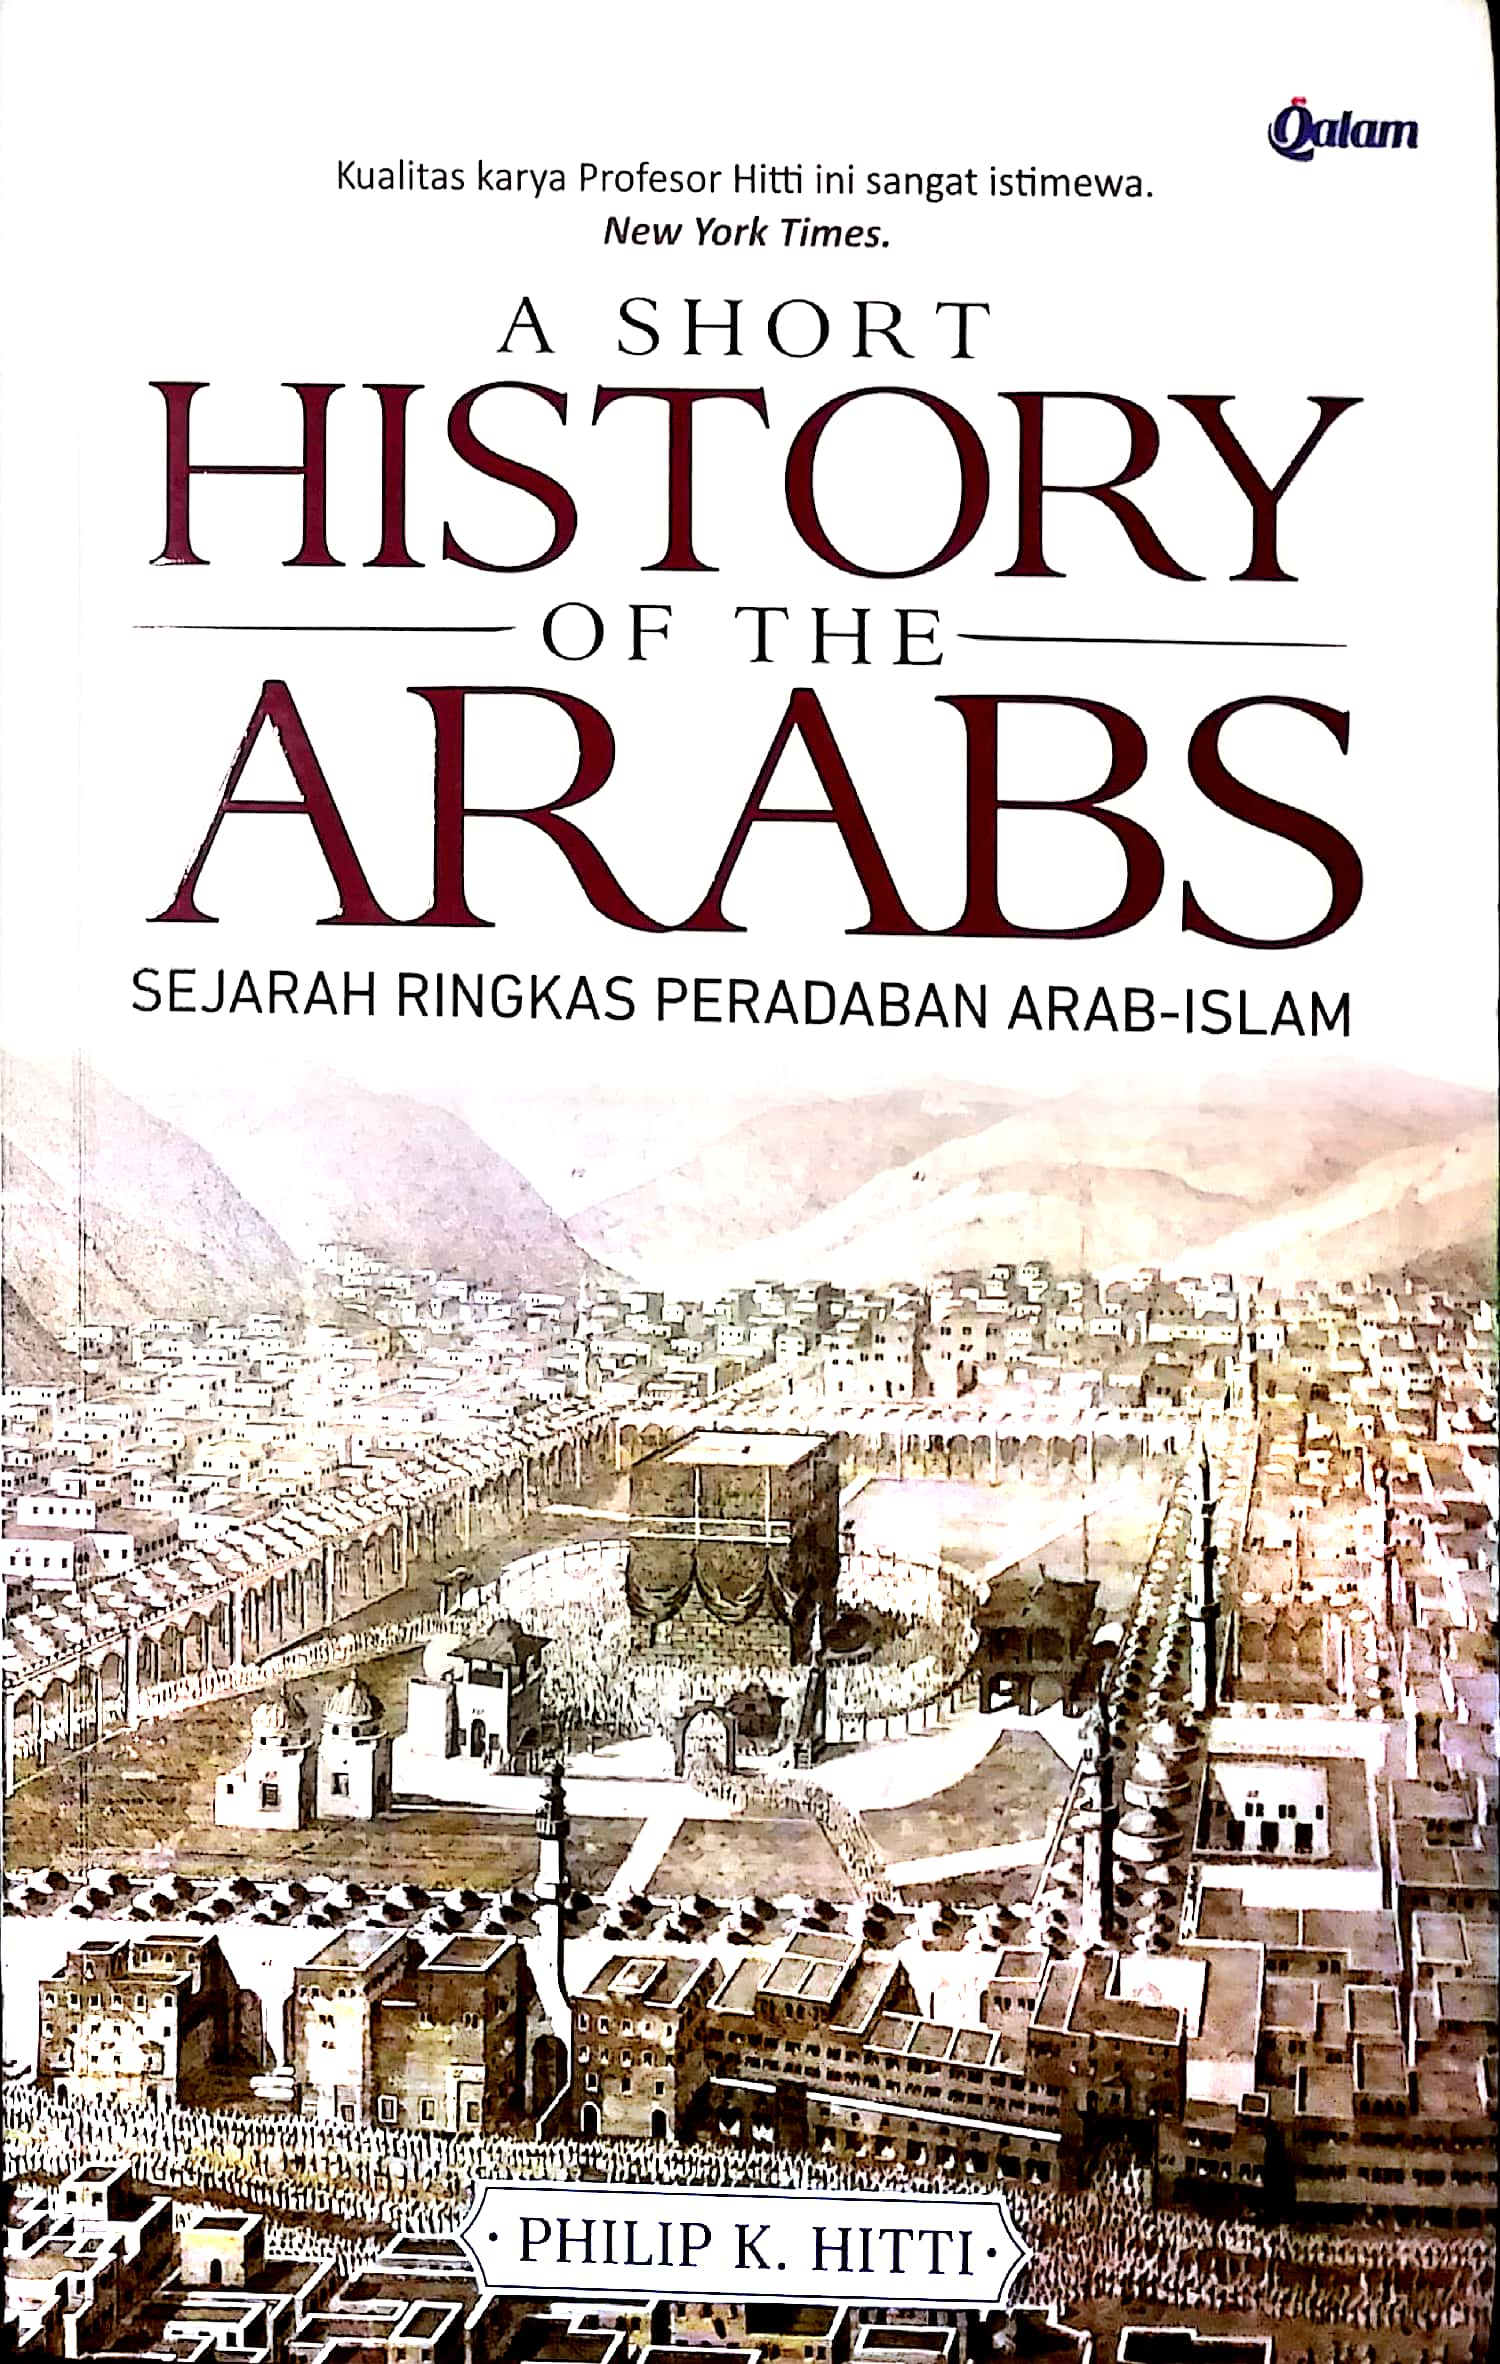 A Short History of The Arabs (Sejarah Ringkas Peradaban Arab-Islam)